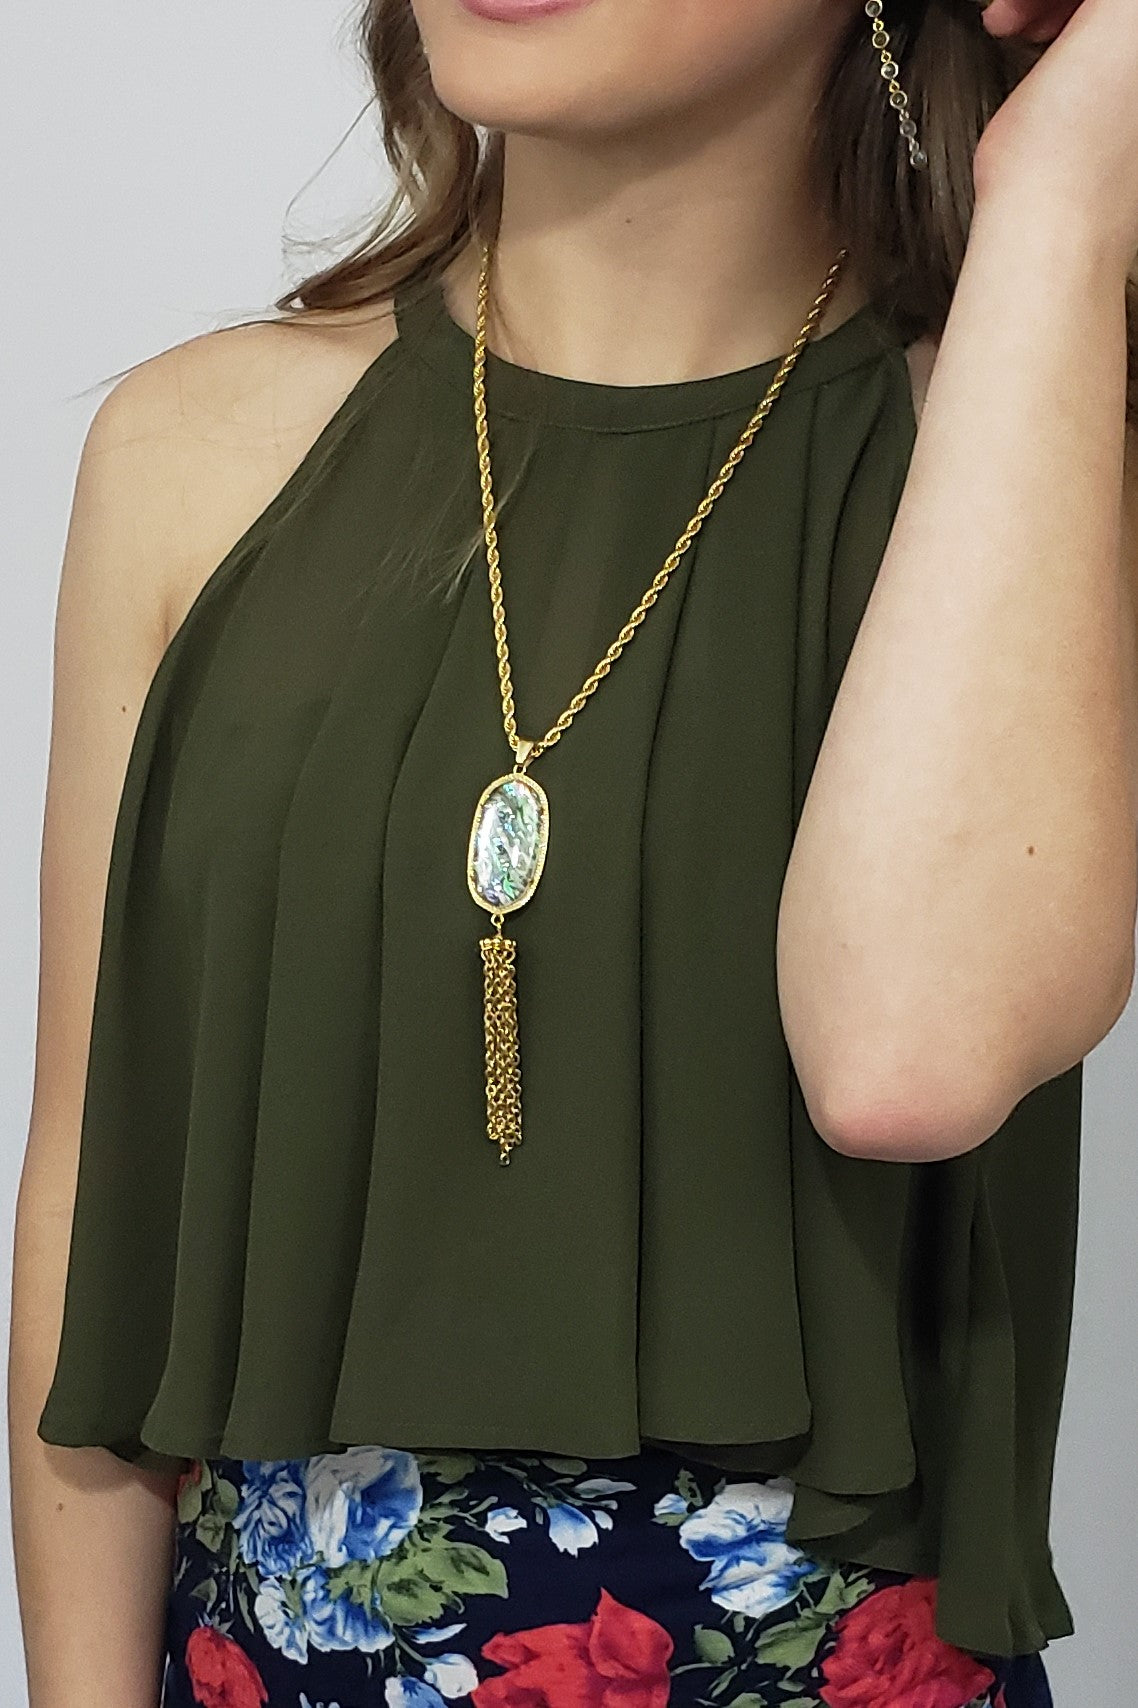 Nzie Swing My Way Chiffon Top in Olive - Houzz of DVA Boutique